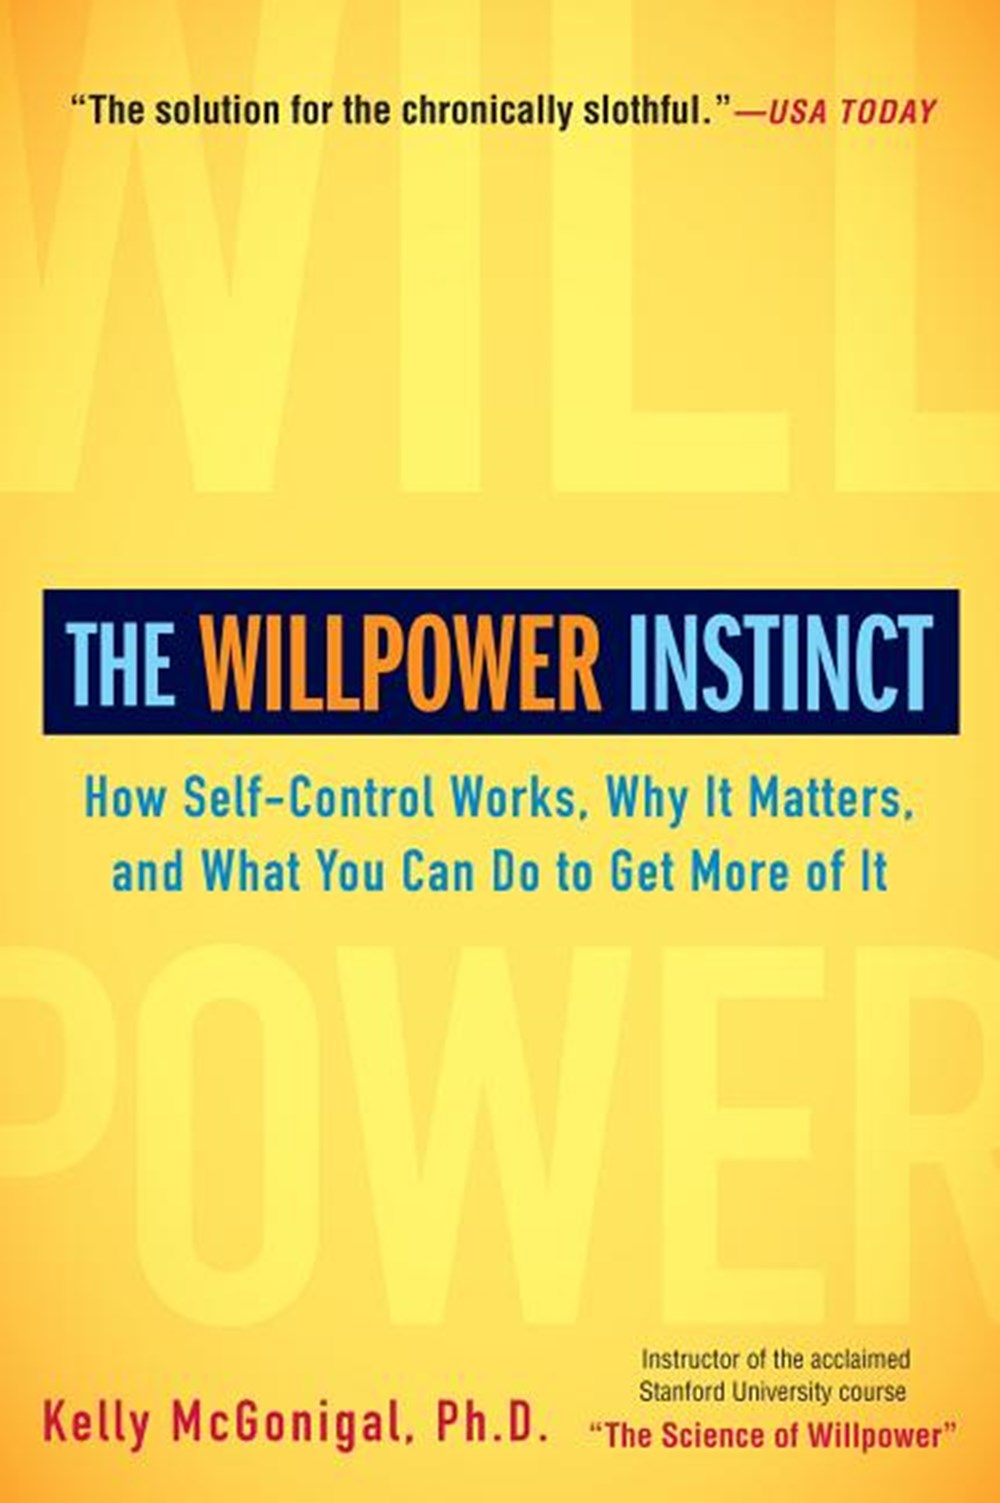 Willpower Instinct How Self-Control Works, Why It Matters, and What You Can Do to Get More of It